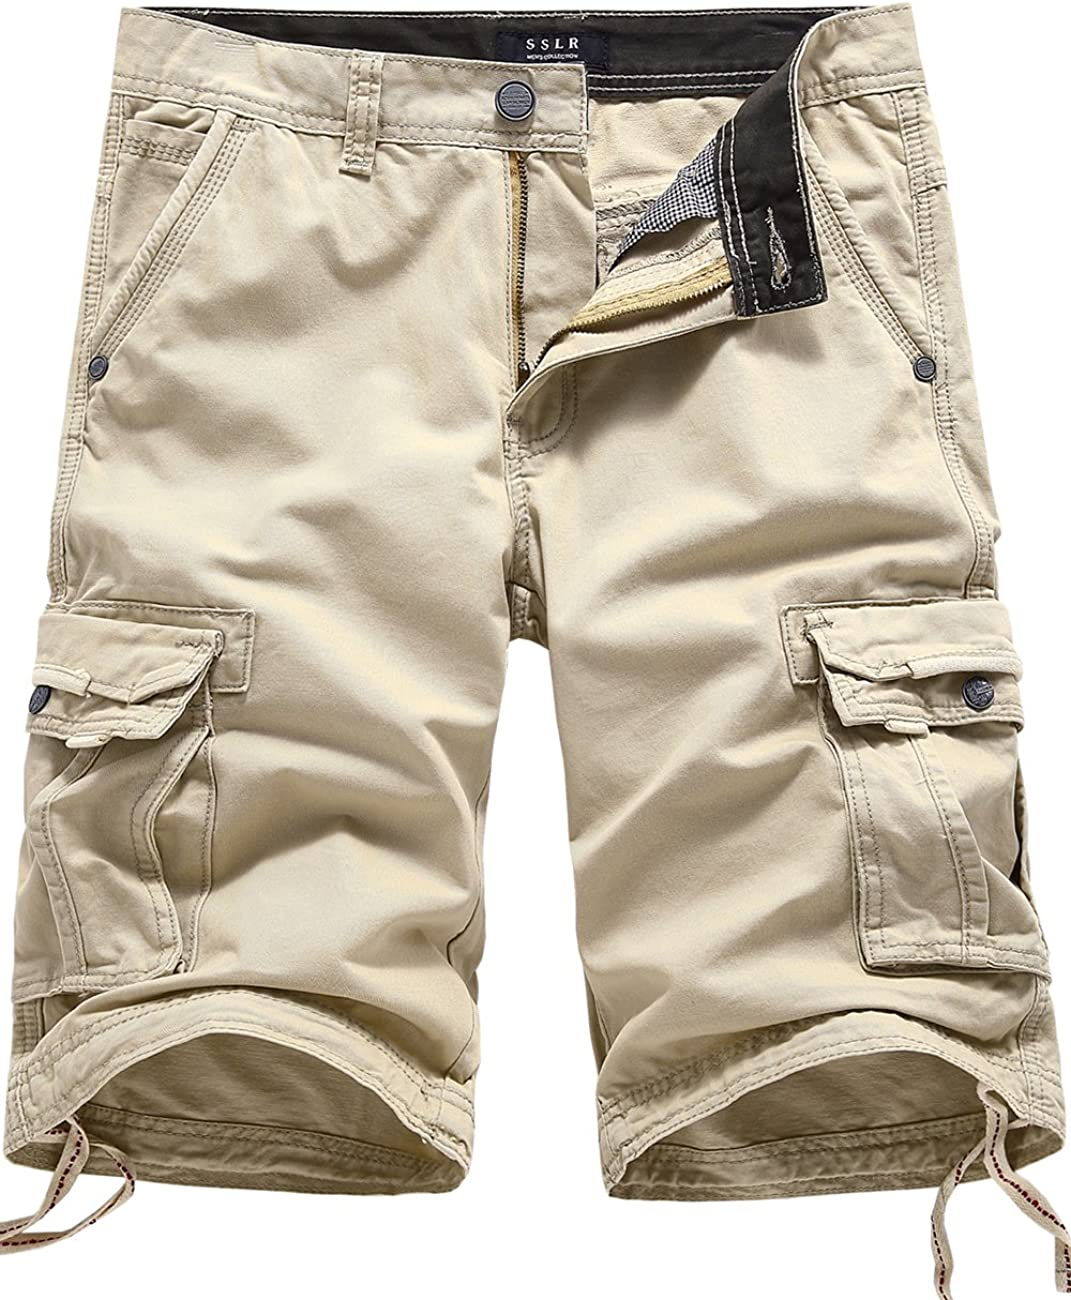 SSLR Mens Casual Cotton Multi-Pocket Cargo Shorts